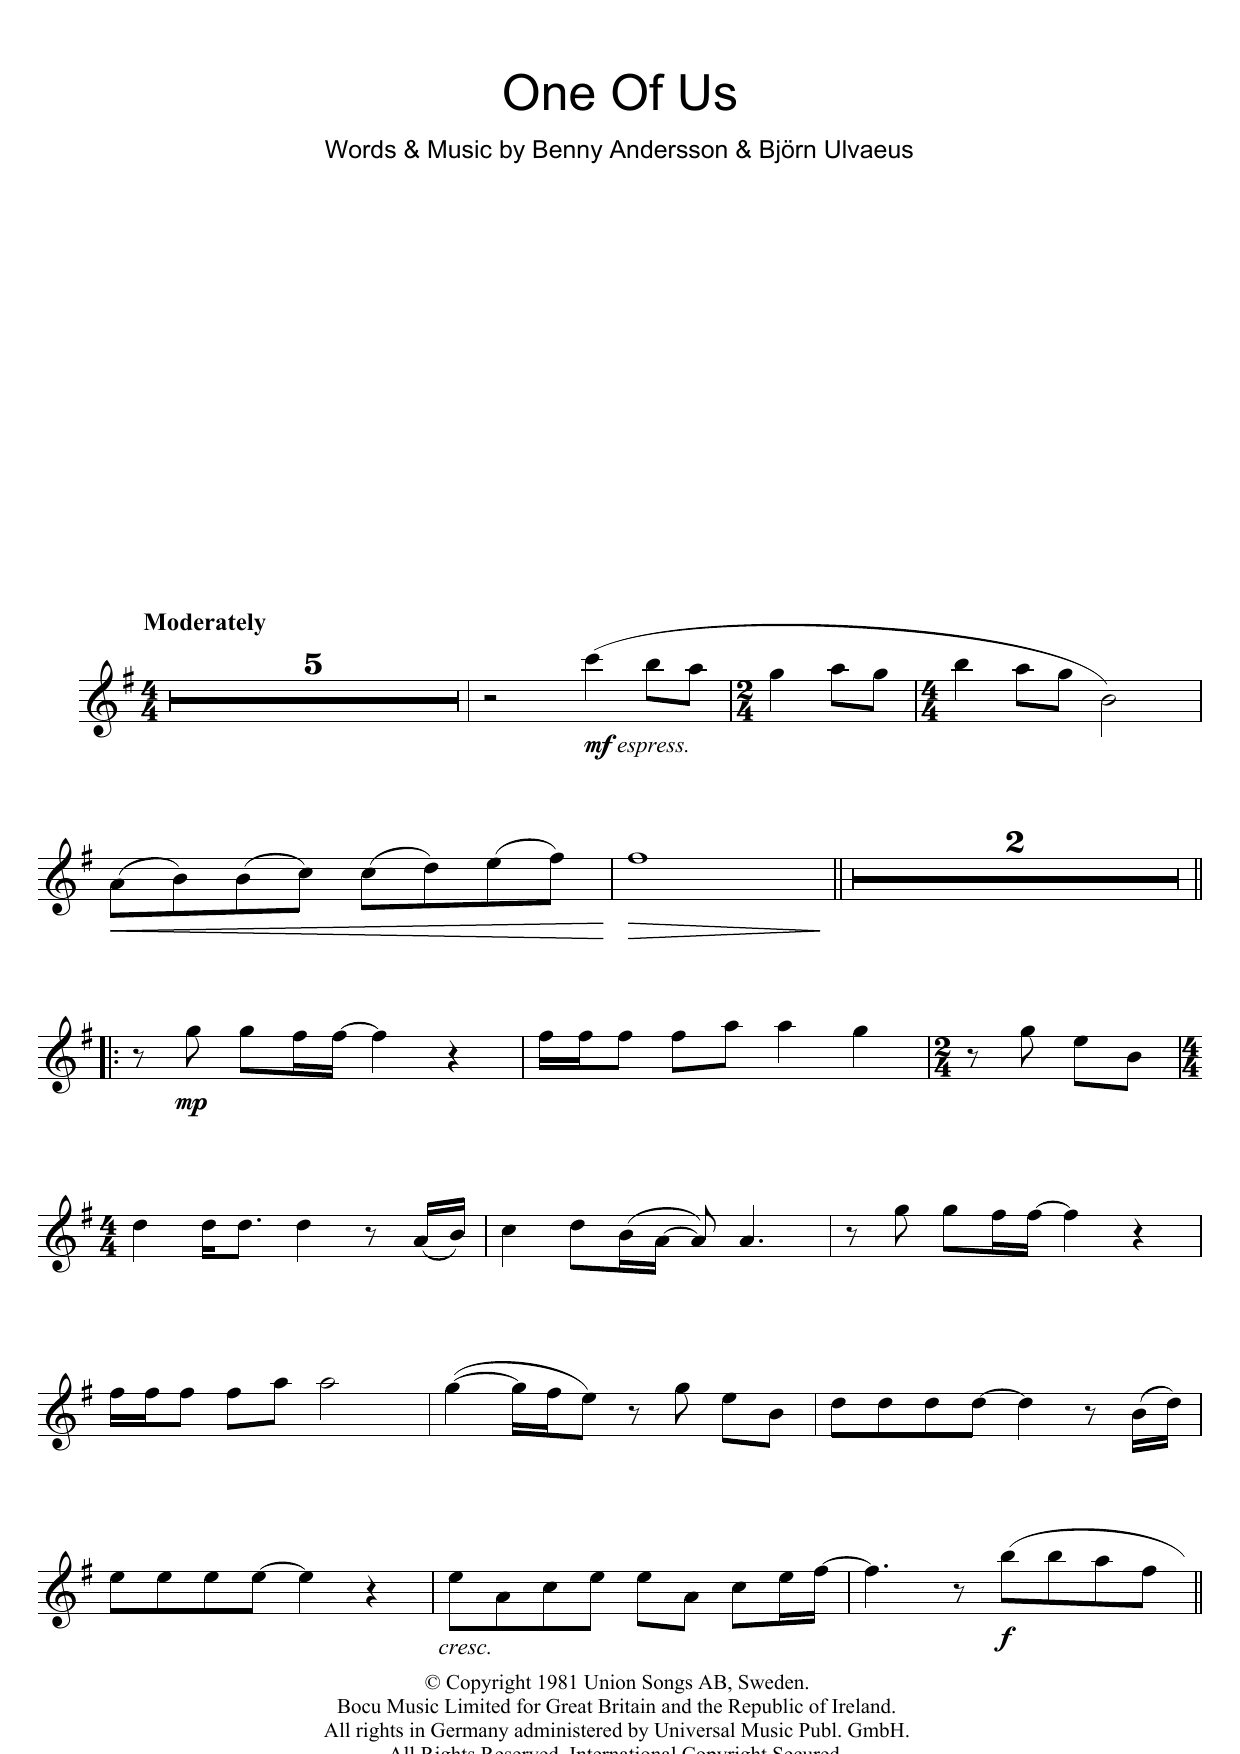 One Of Us Sheet Music | ABBA | Flute - photo#17